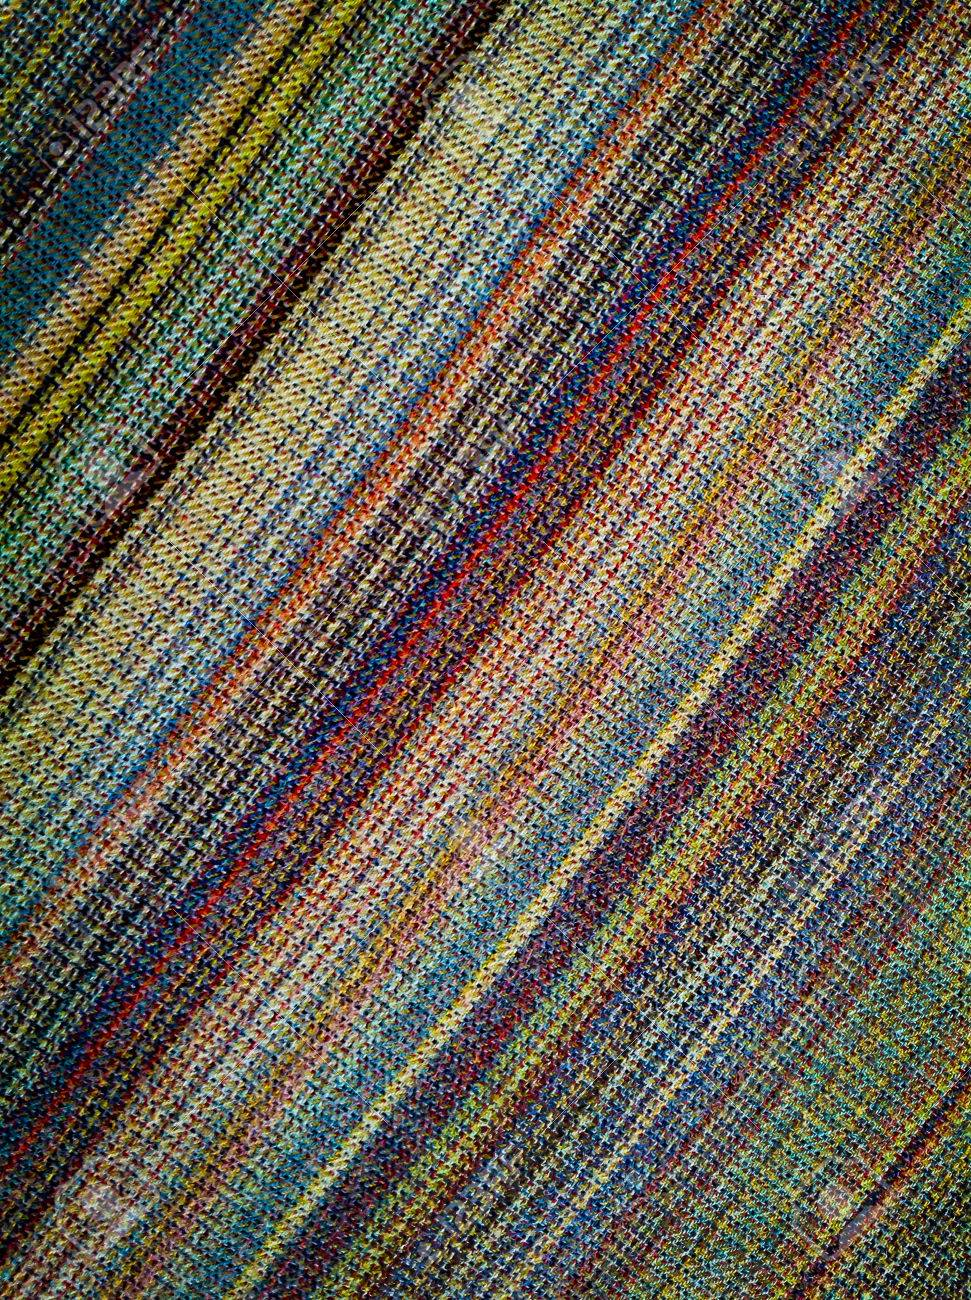 fabric textures from clothing